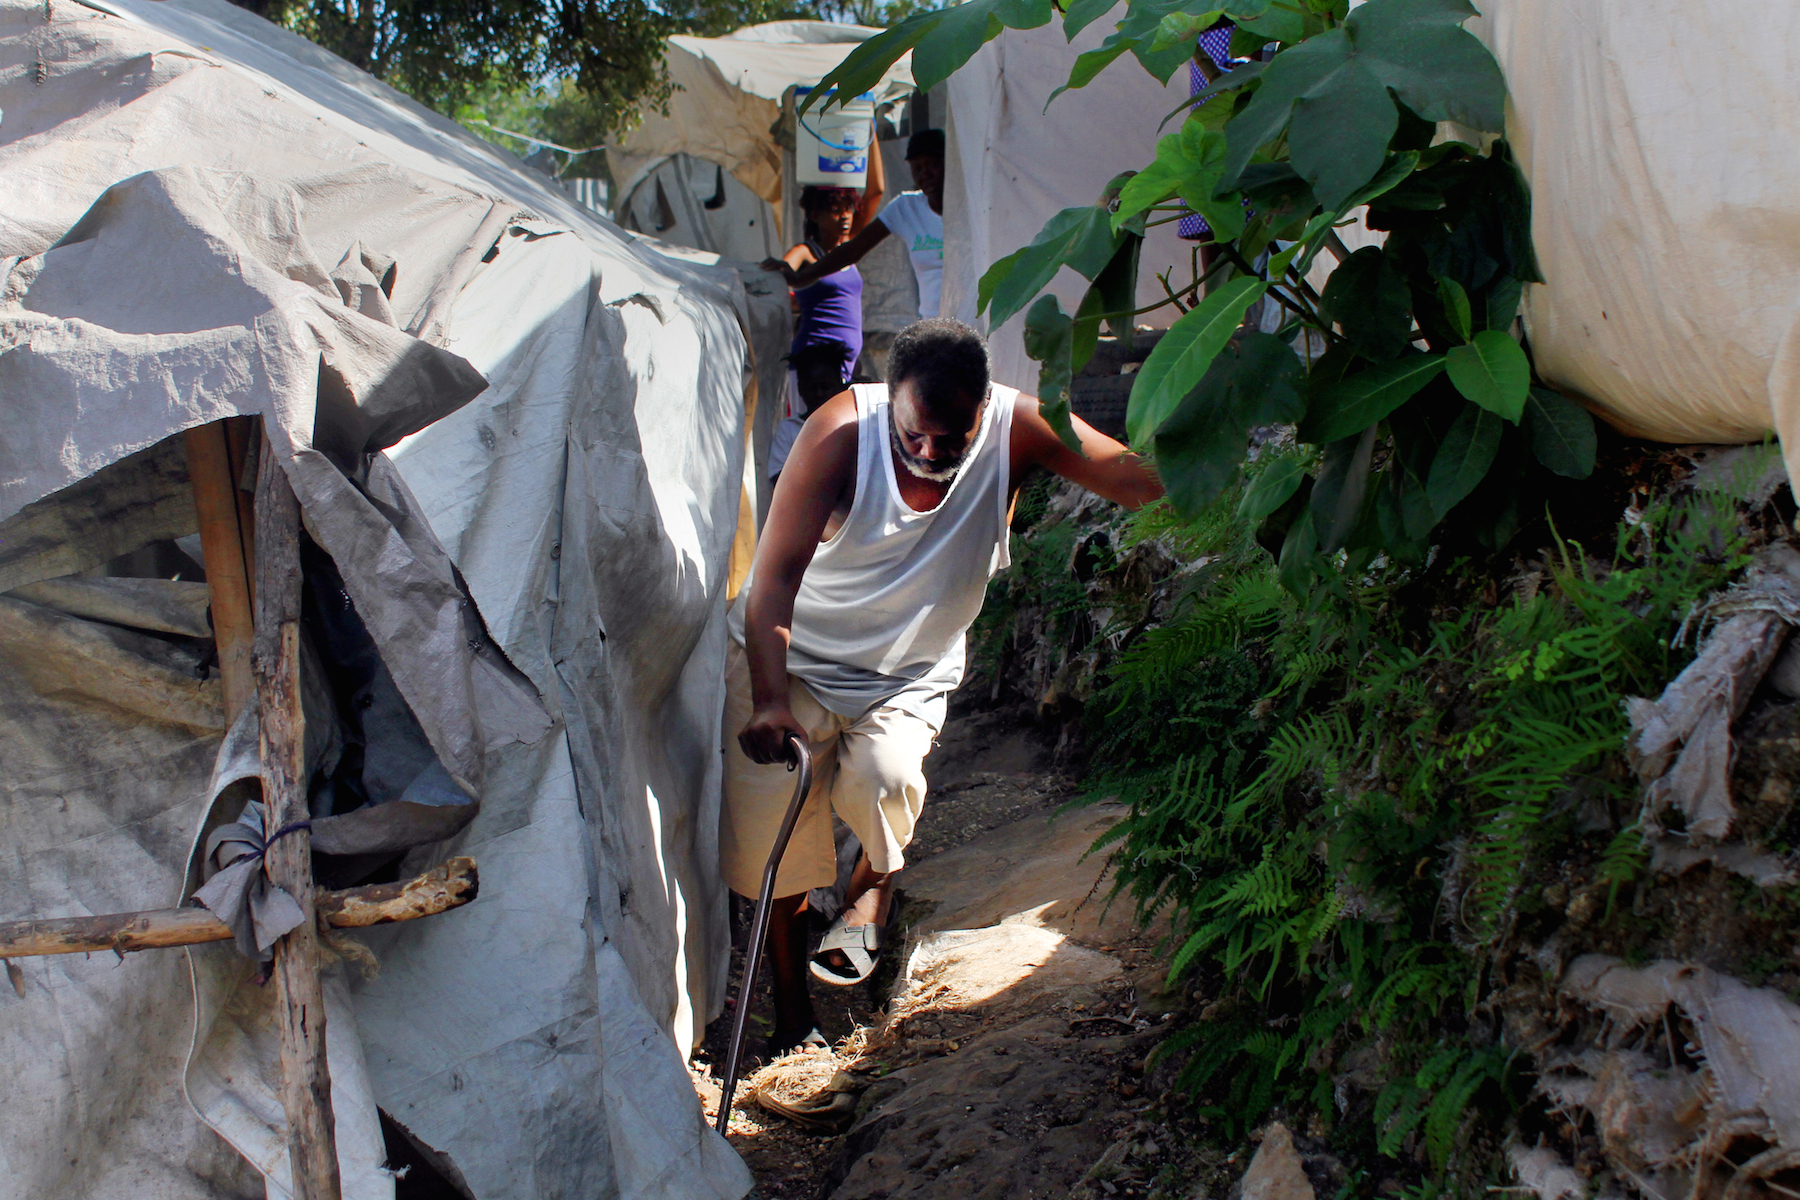 Charles Ivalien, 52, makes his way through the narrow, hillside paths of the Acra 2 camp in the Pétion-Ville commune of Port-au-Prince. The International Organization for Migration is in the process of clearing the camp, one of 271 still open since the 2010 earthquake displaced 1.5 million Haitians. Ivalien is now renting a home with a year-long subsidy provided by IOM.